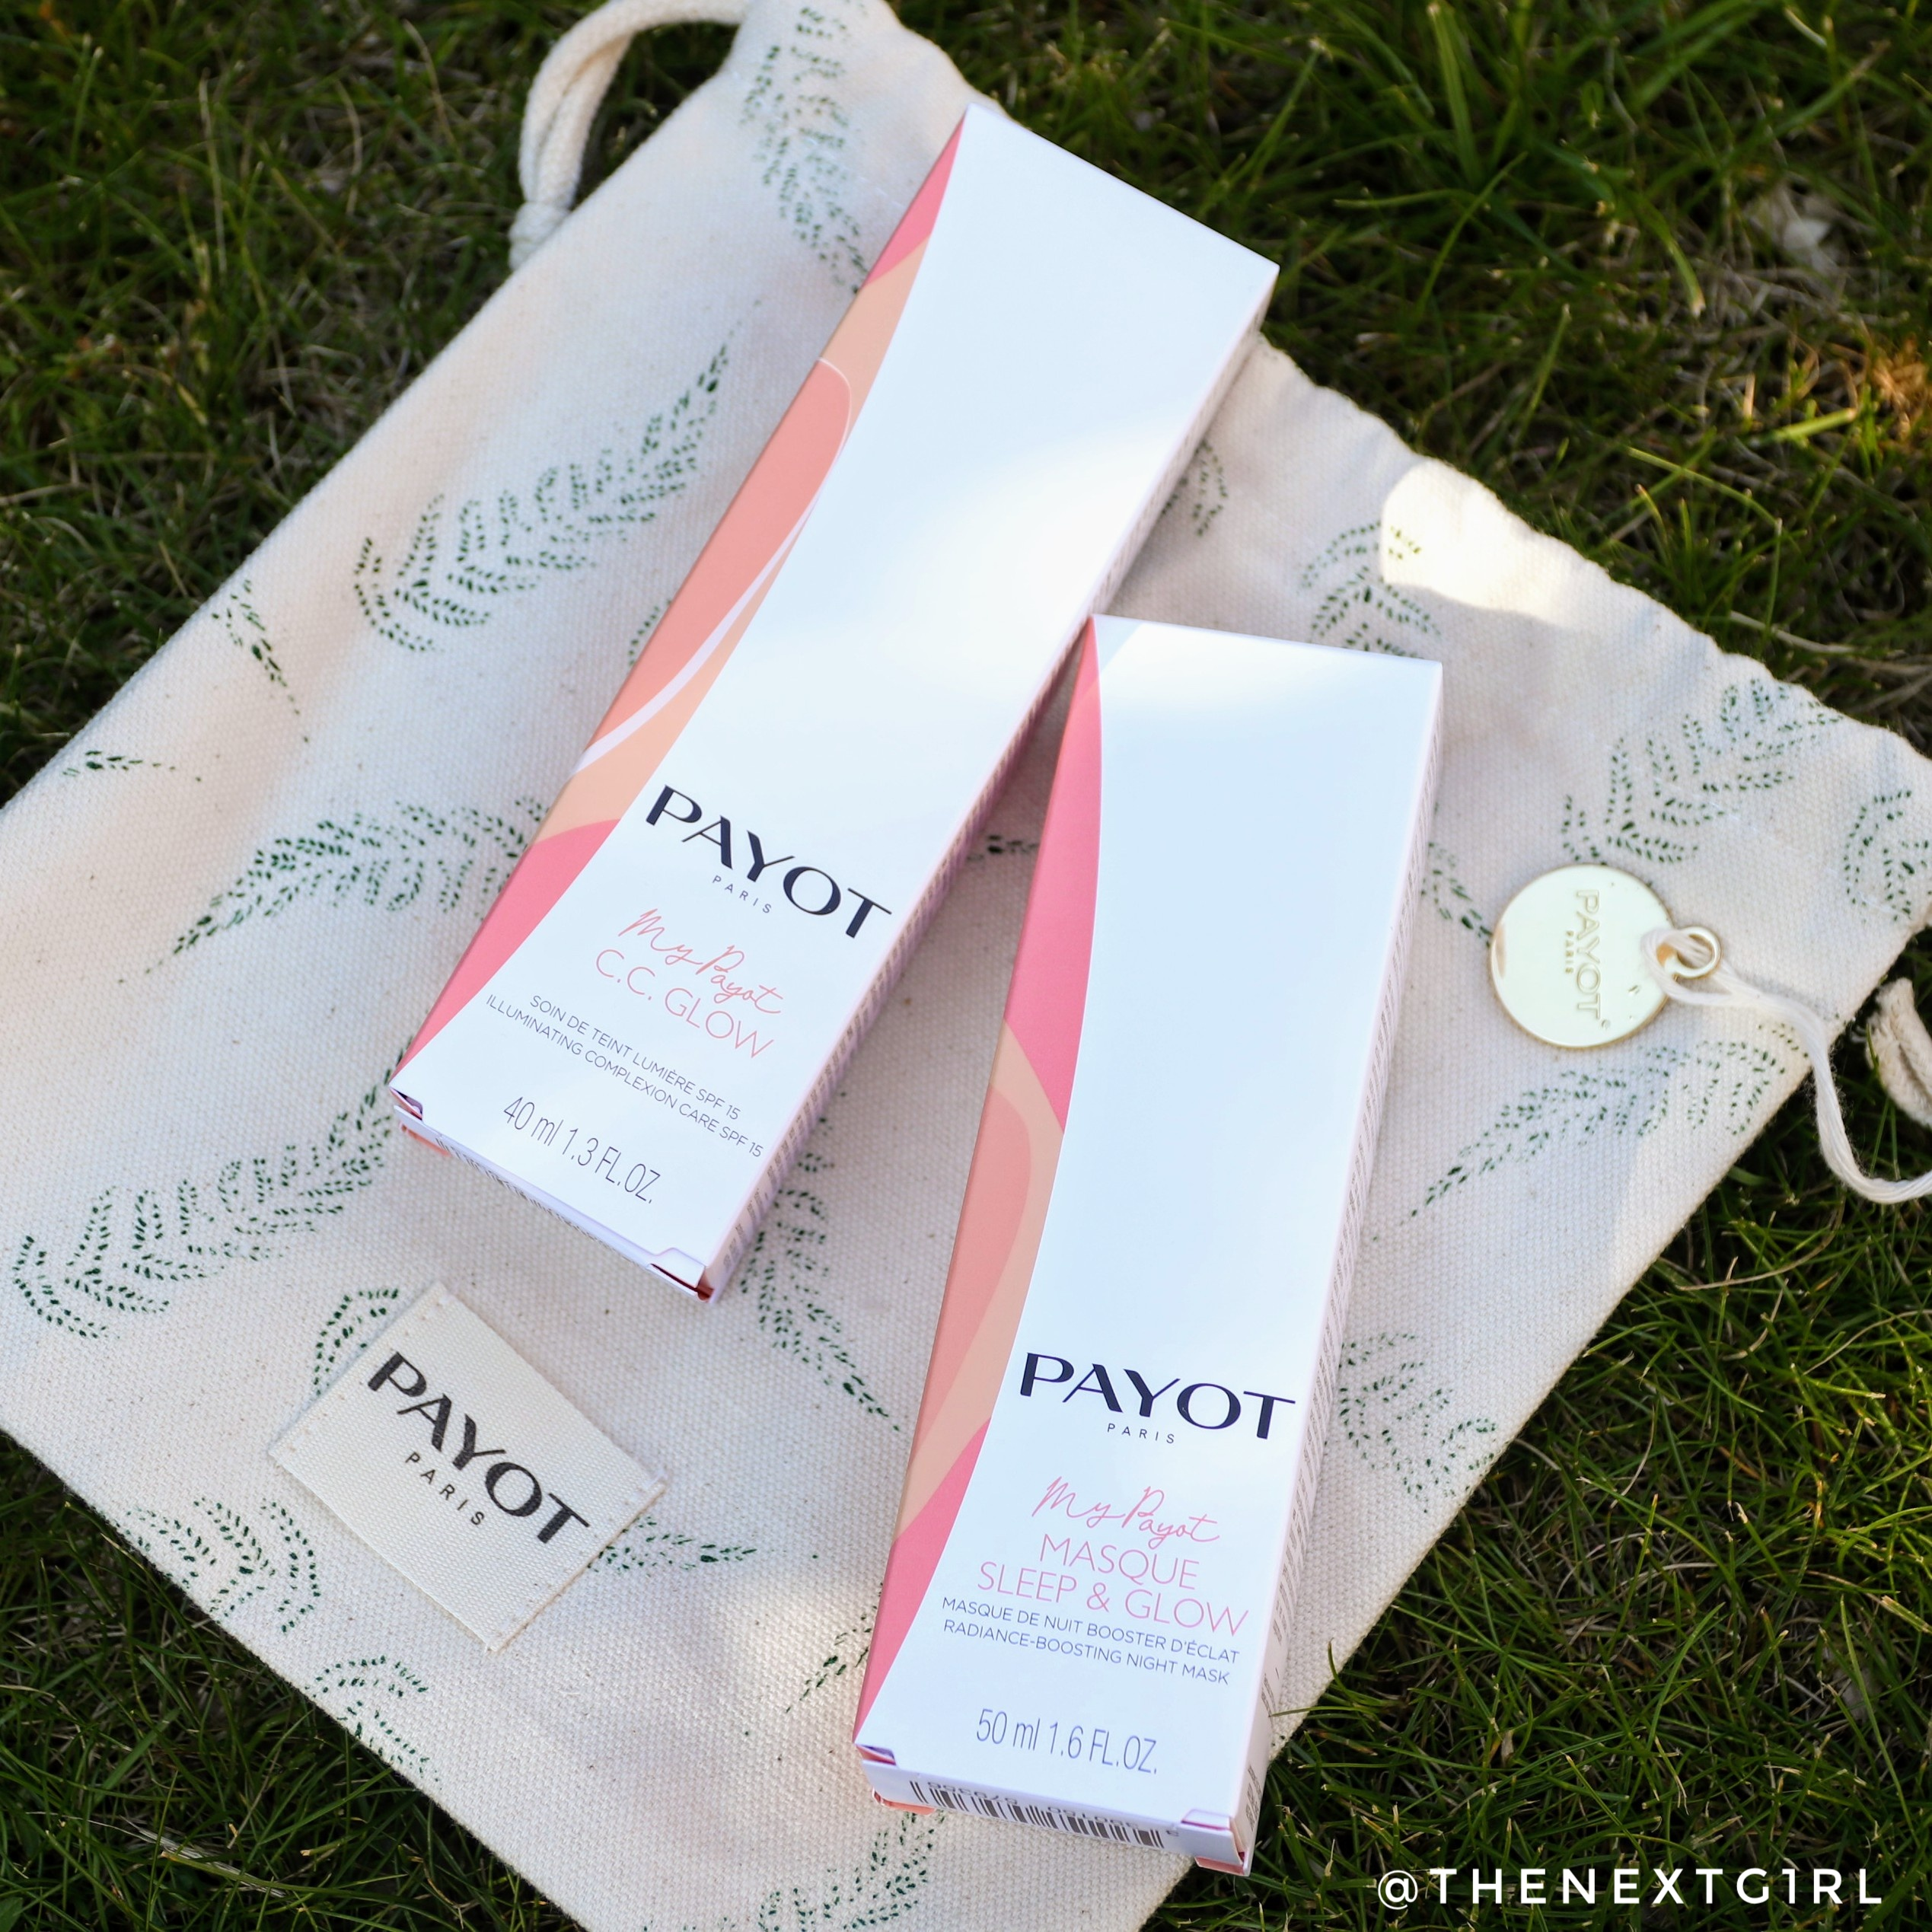 Review: MY PAYOT Glow producten